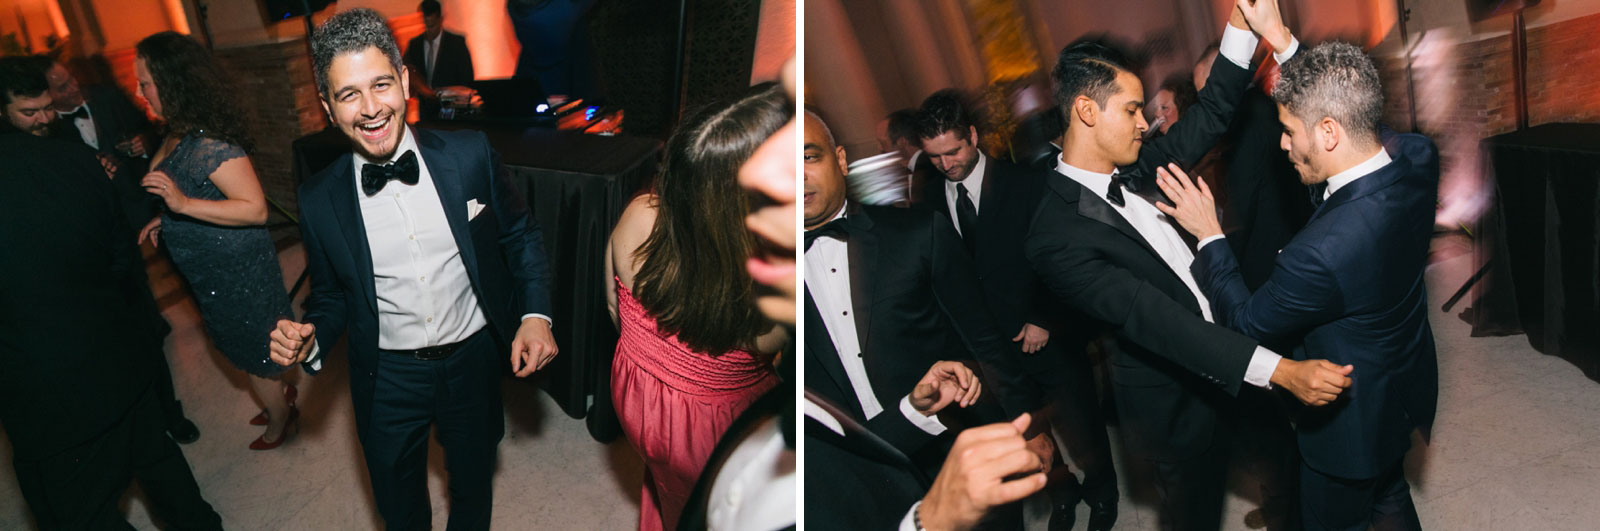 Wedding guests busting a move on the dance floor at Boston Public library wedding reception